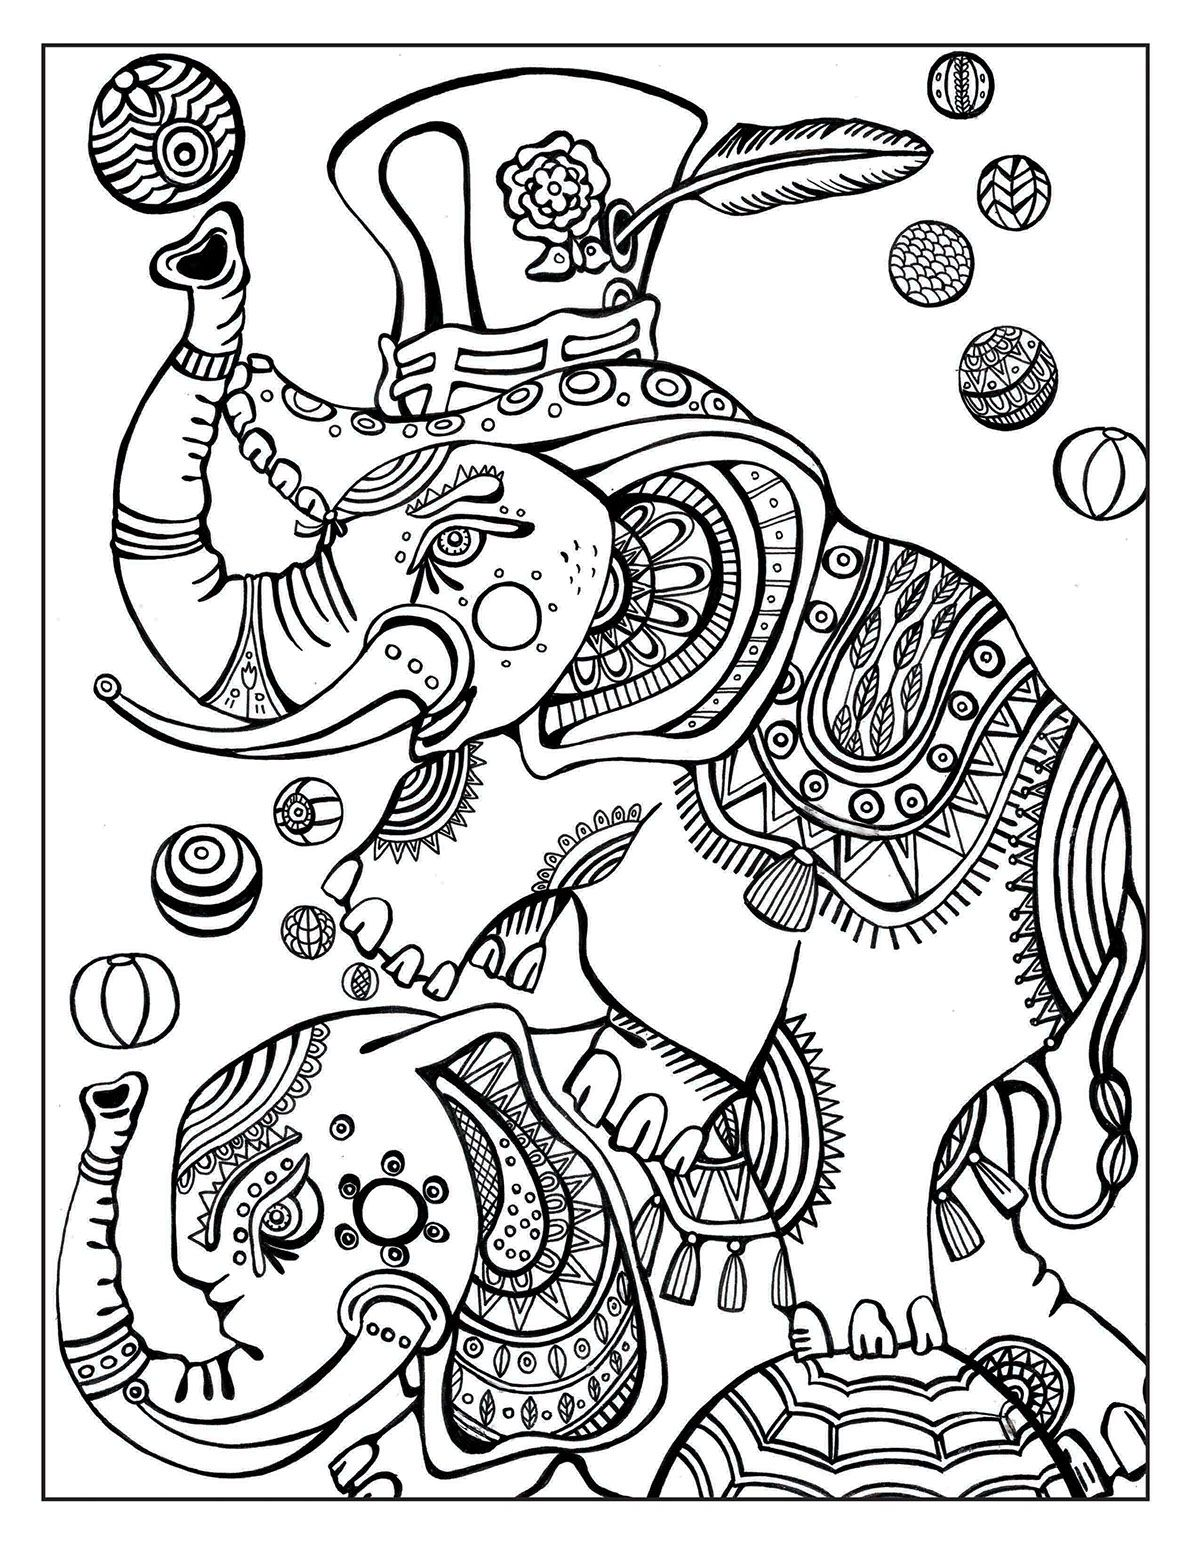 A Day At The Circus Coloring Page On Behance